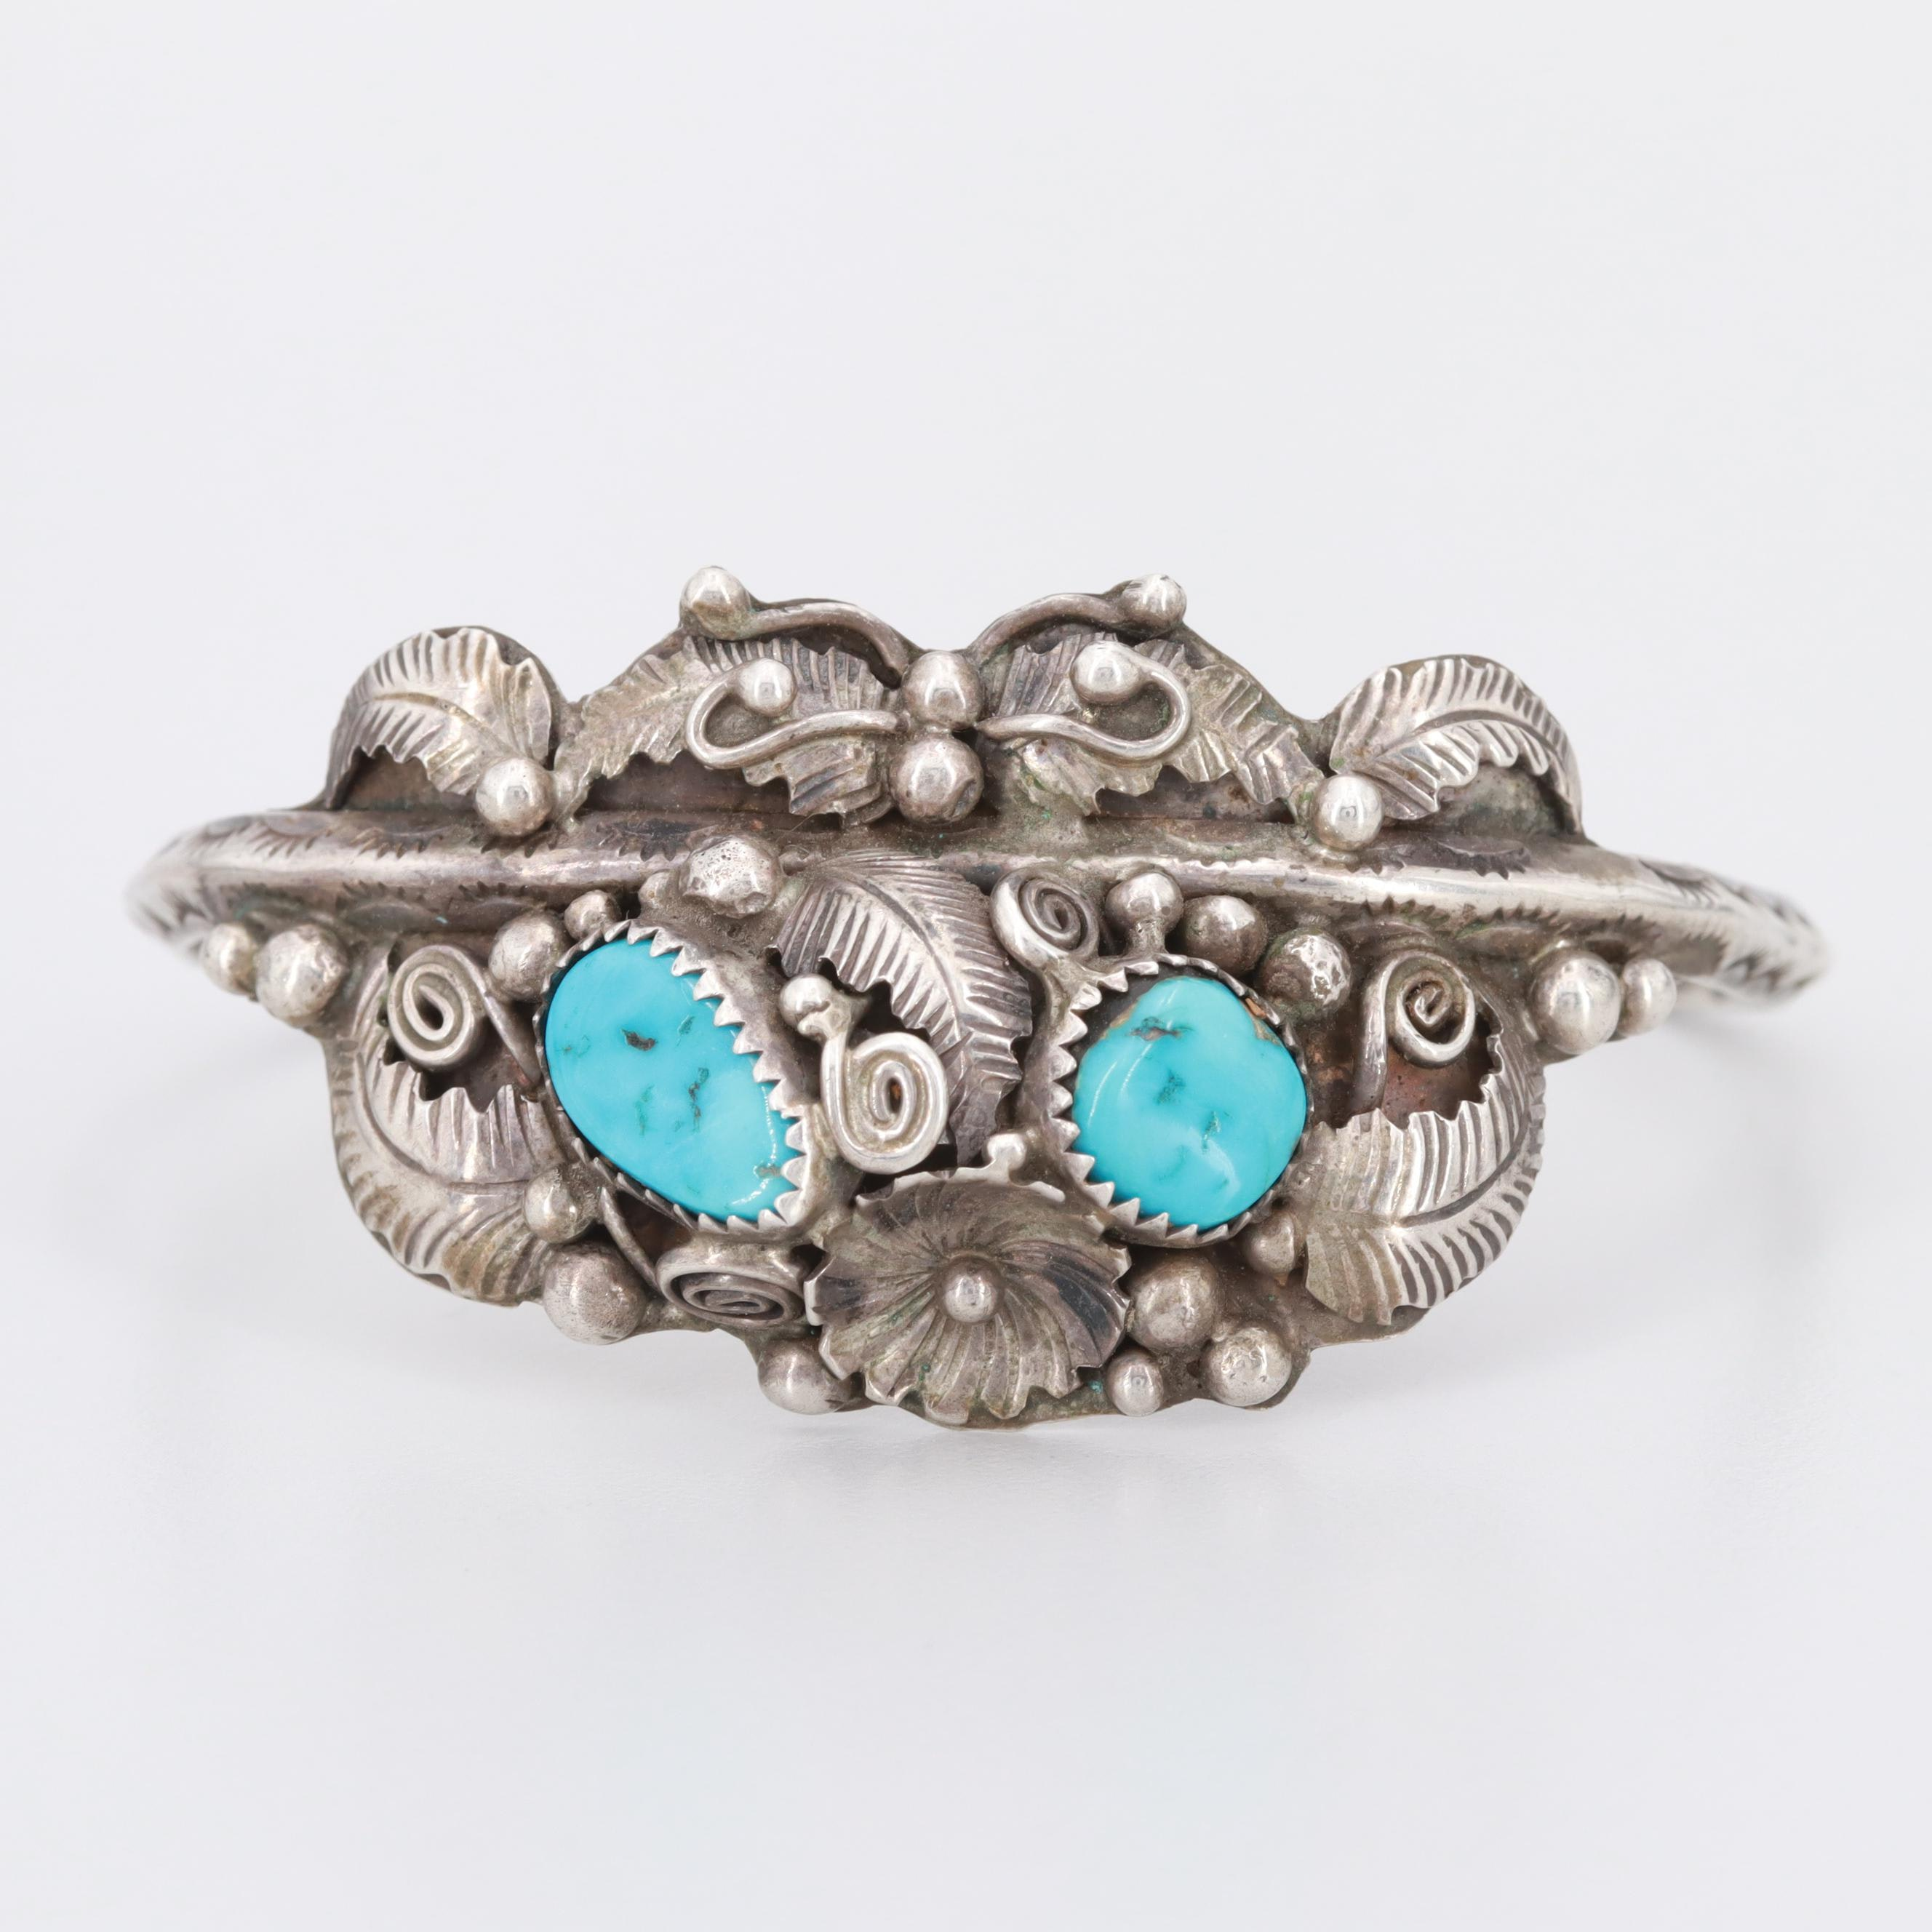 Lucy Calladitto Navajo Diné Sterling Silver Turquoise Cuff Bracelet